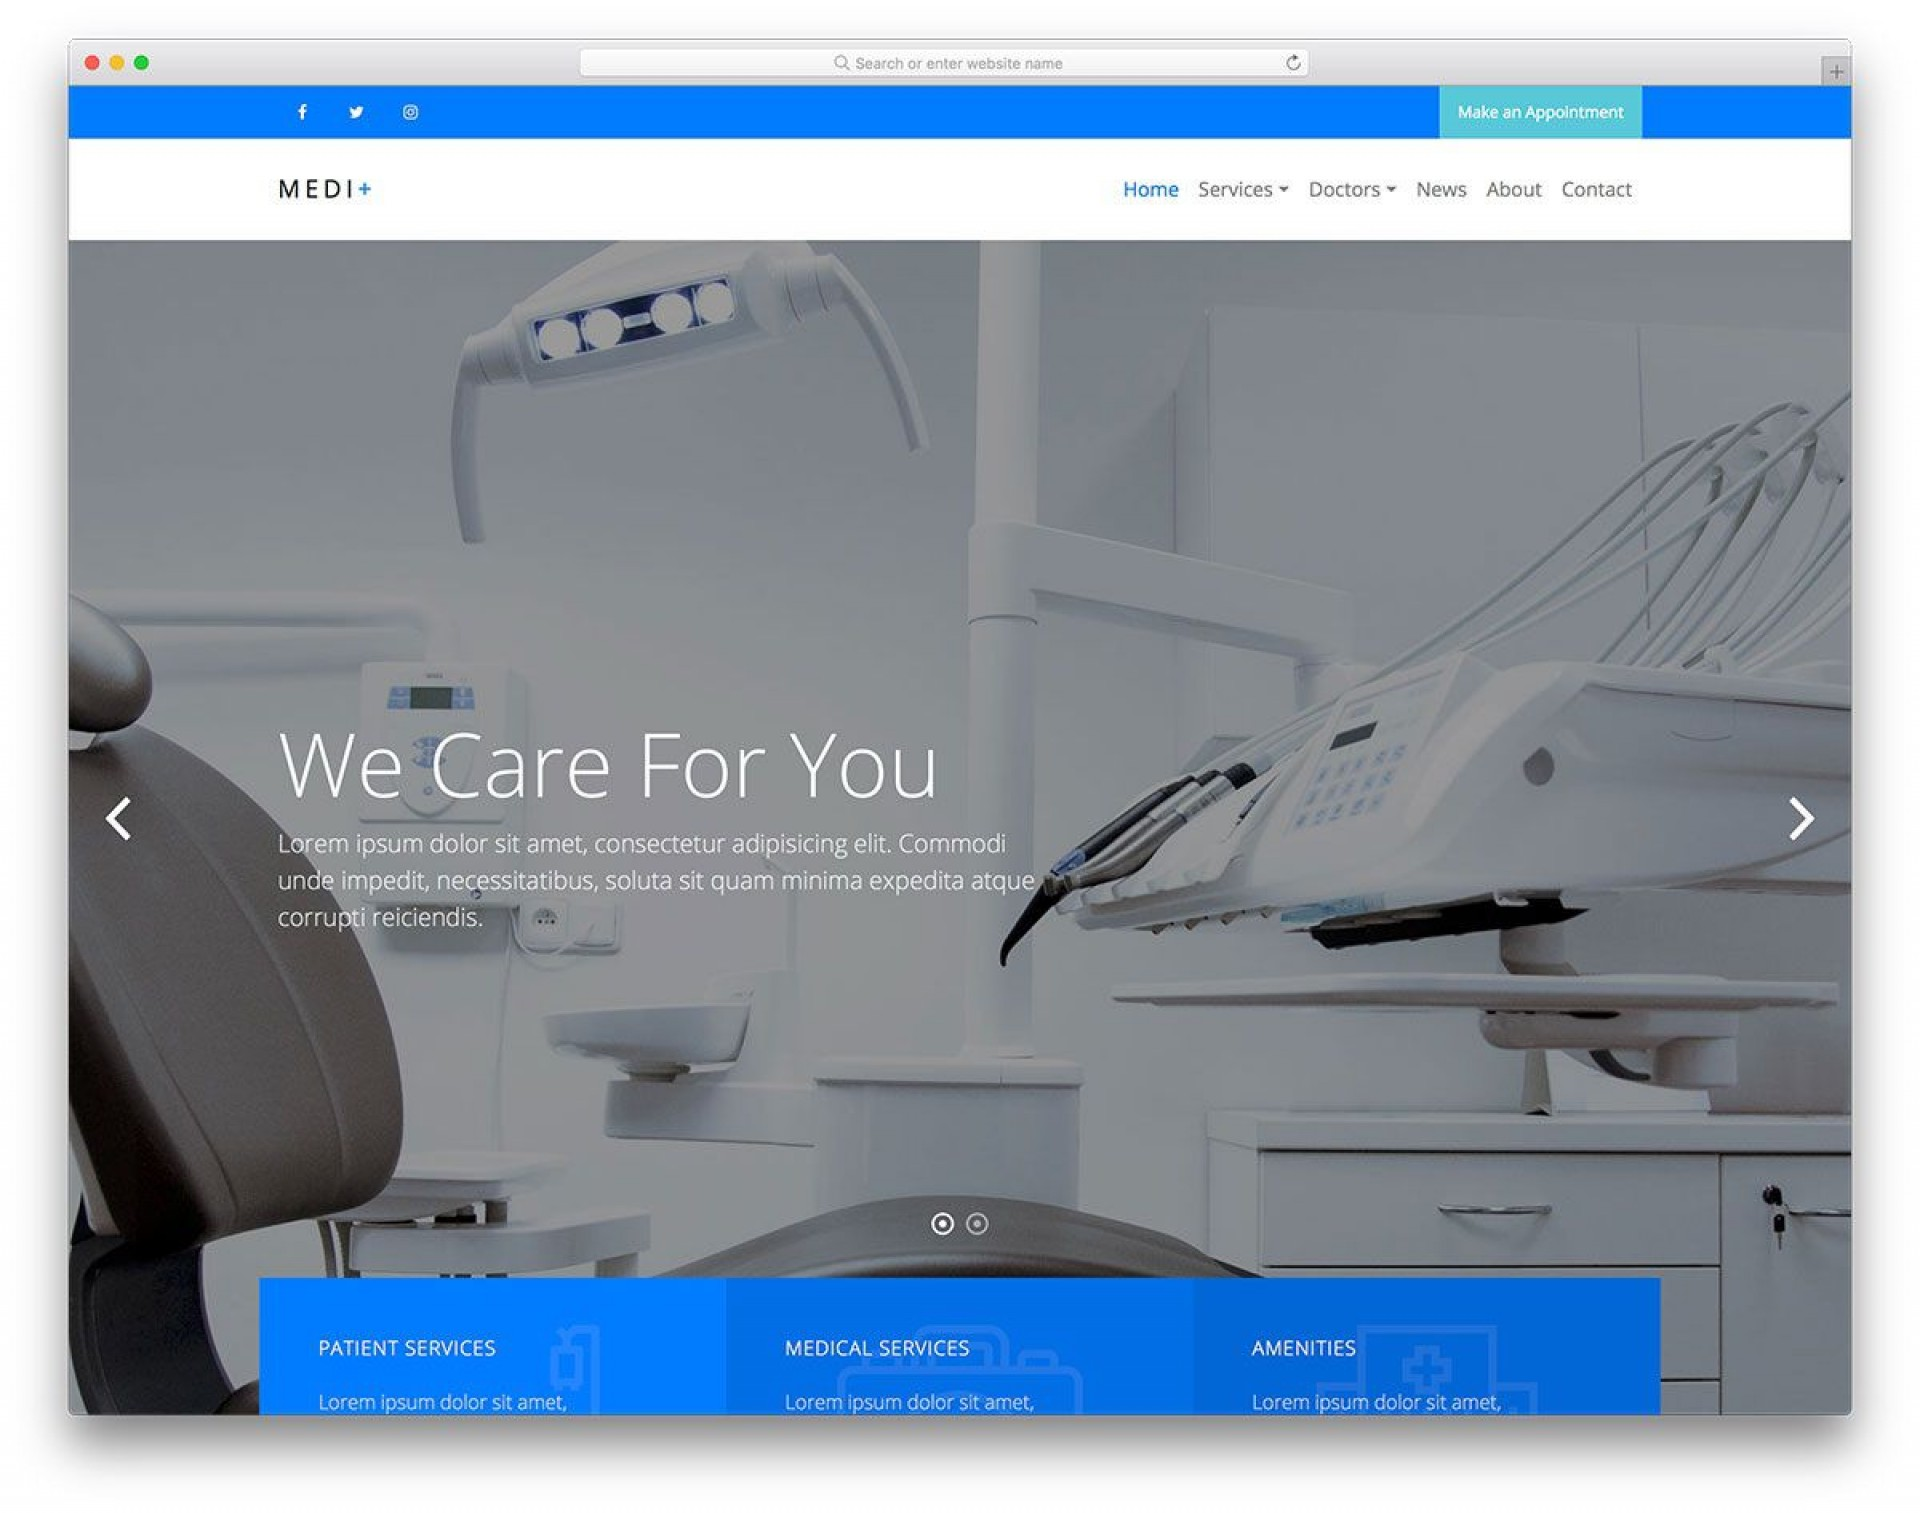 004 Excellent Mobile Friendly Web Template Image  Templates Free Page1920